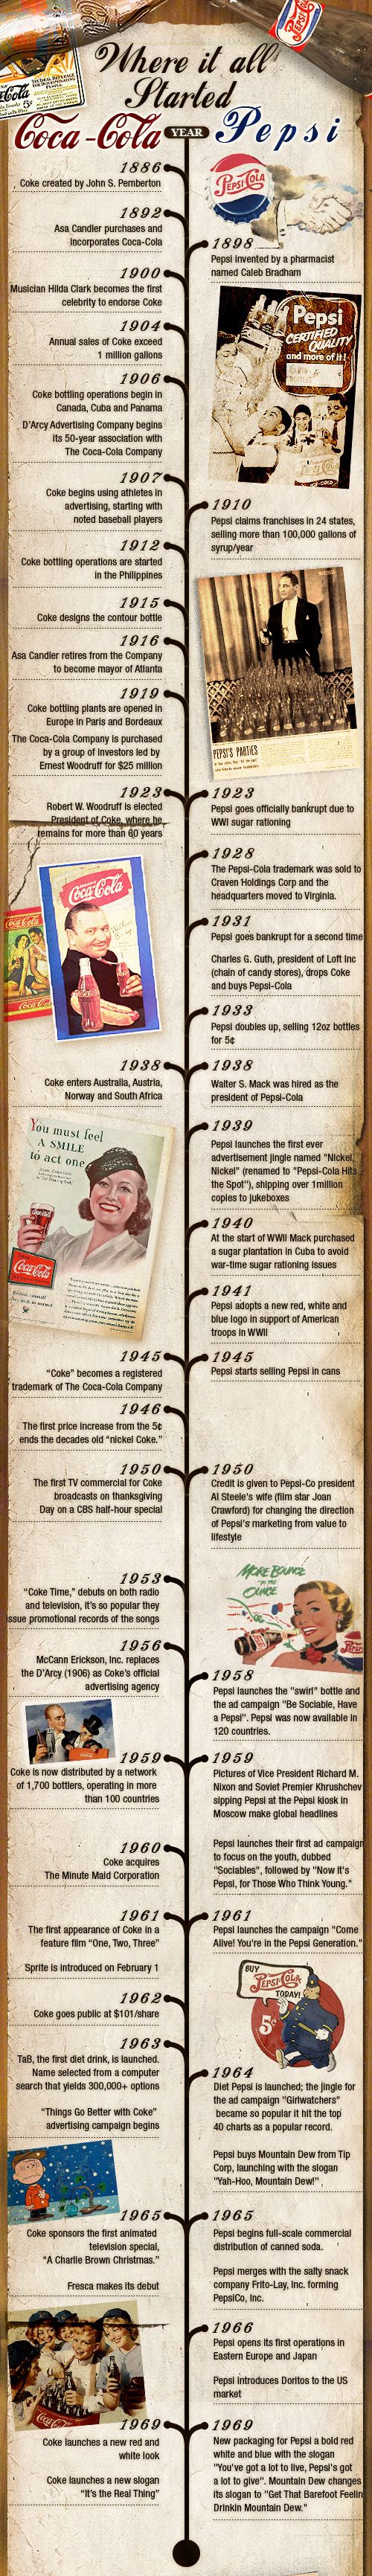 top 25 ideas about coca cola logo logo coca where it all started coca cola pepsi